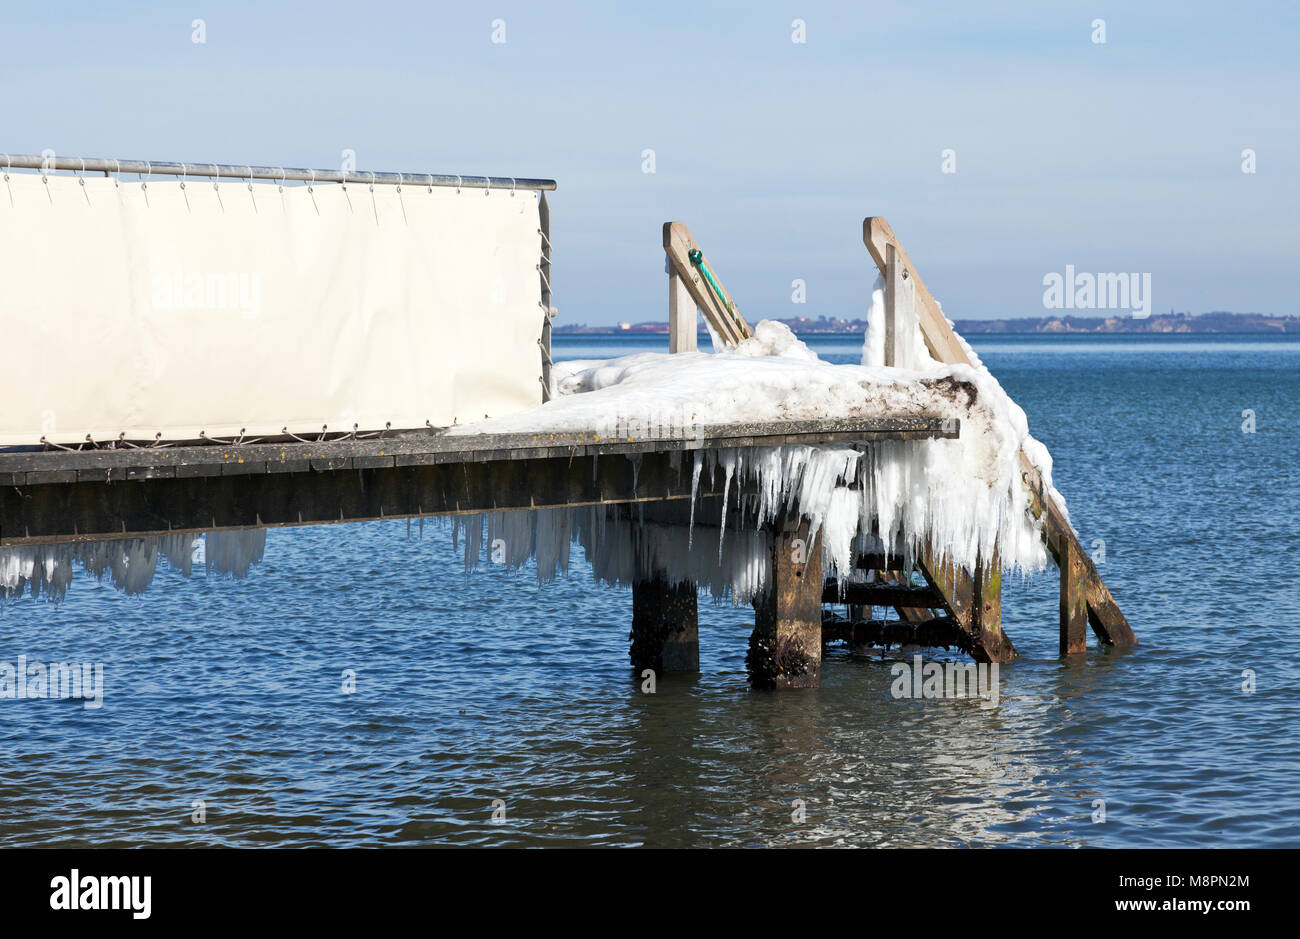 Melting ice formations and icicles on a bathing jetty at Skodsborg after a long cold spell of night and day frost - Stock Image